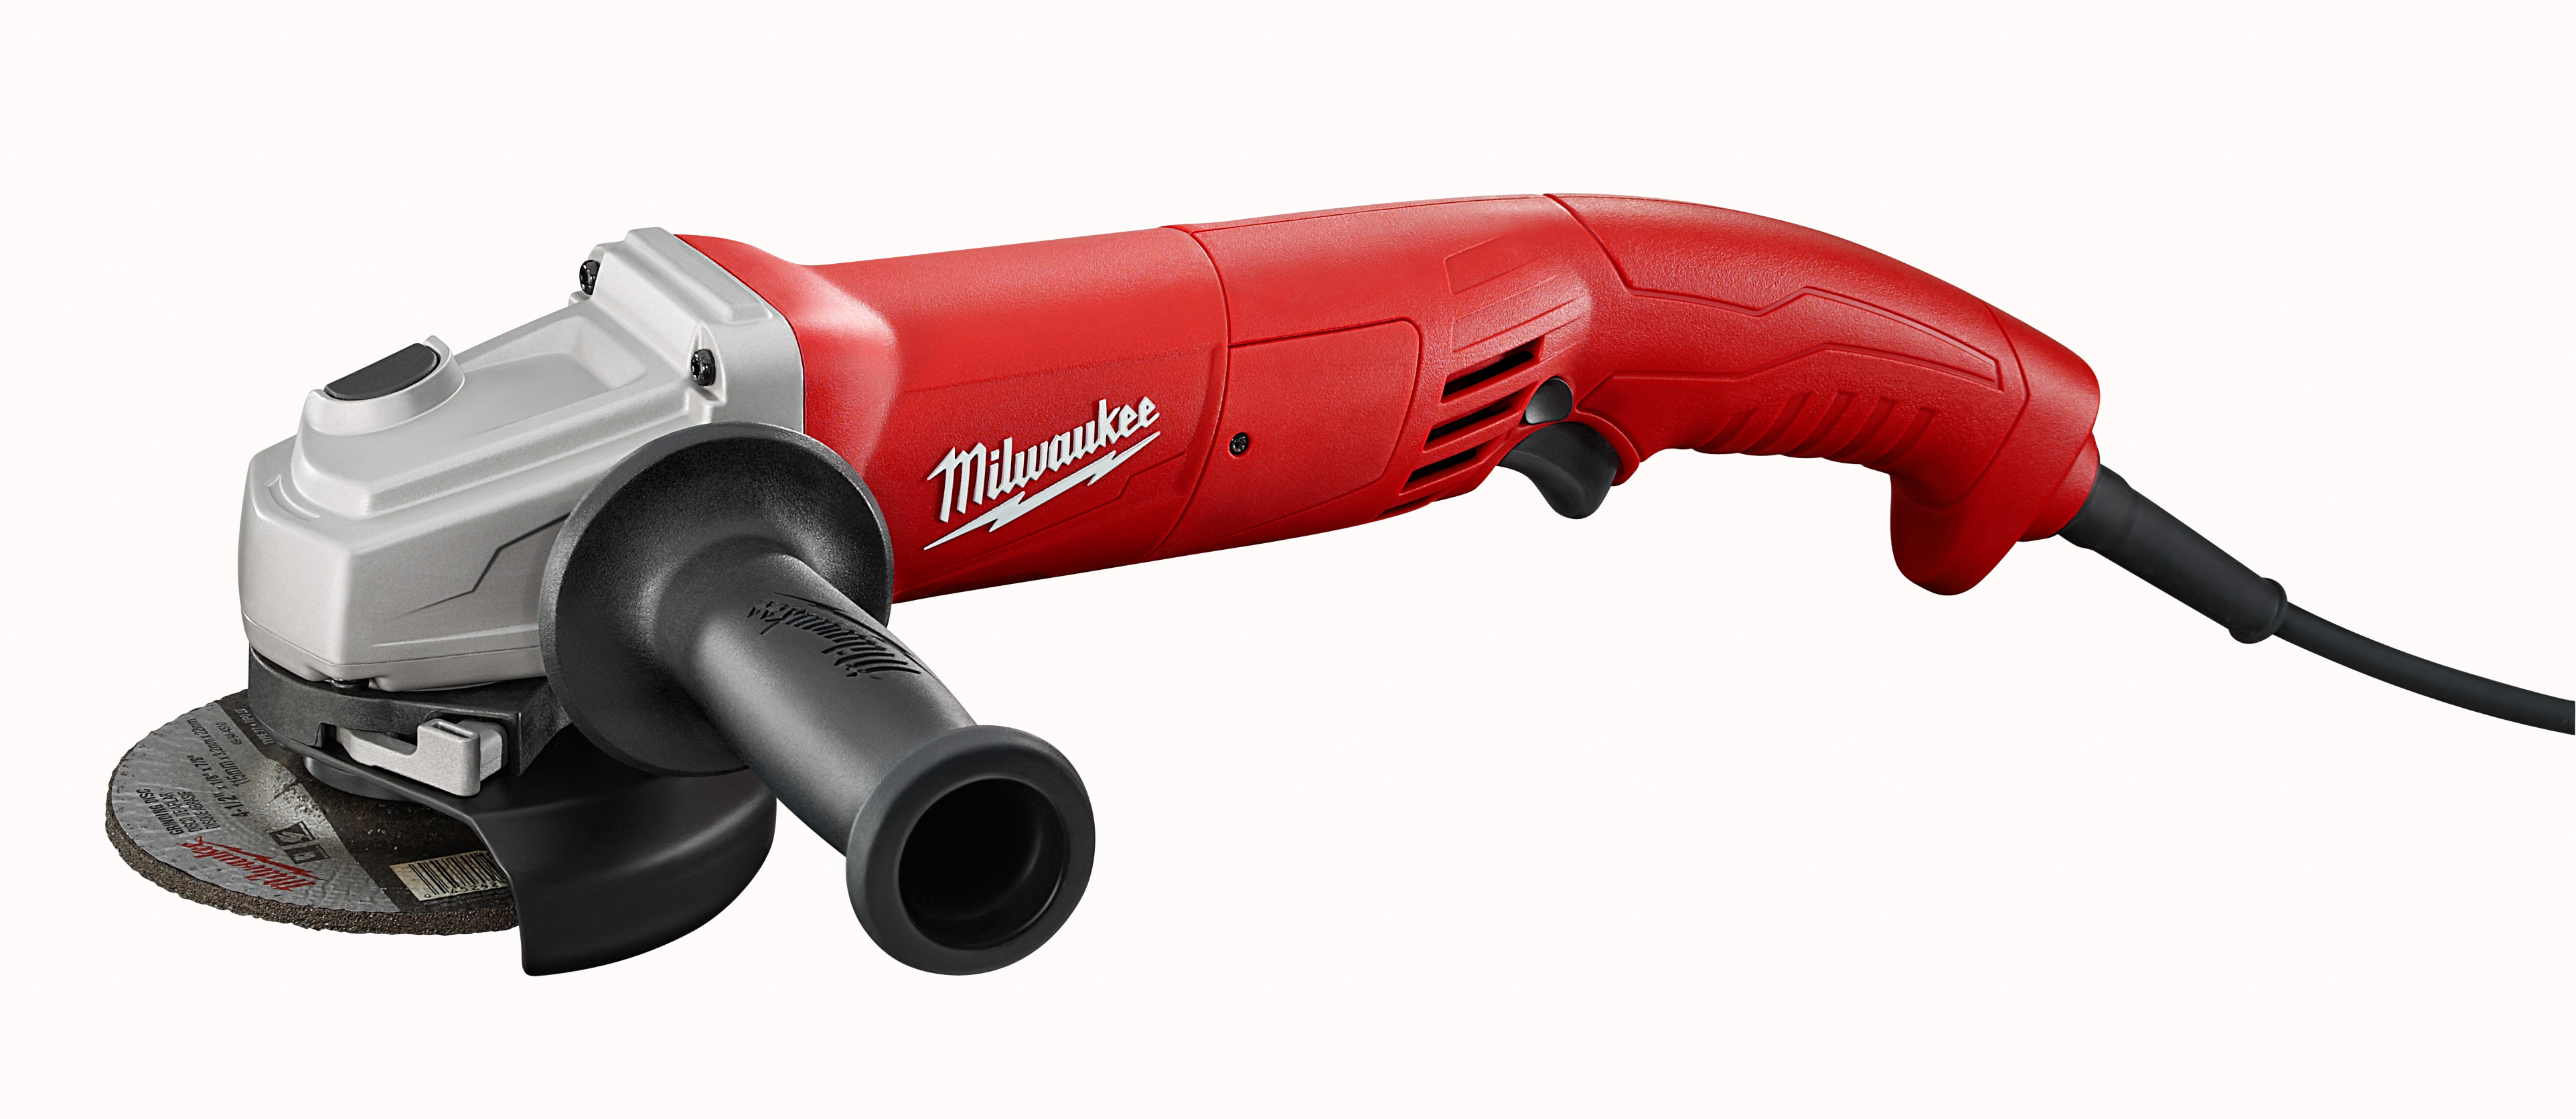 Milwaukee® 6121-30 Double Insulated Small Angle Grinder, 4-1/2 in Dia Wheel, 5/8-11 Arbor/Shank, 120 VAC, Black/Red/Silver